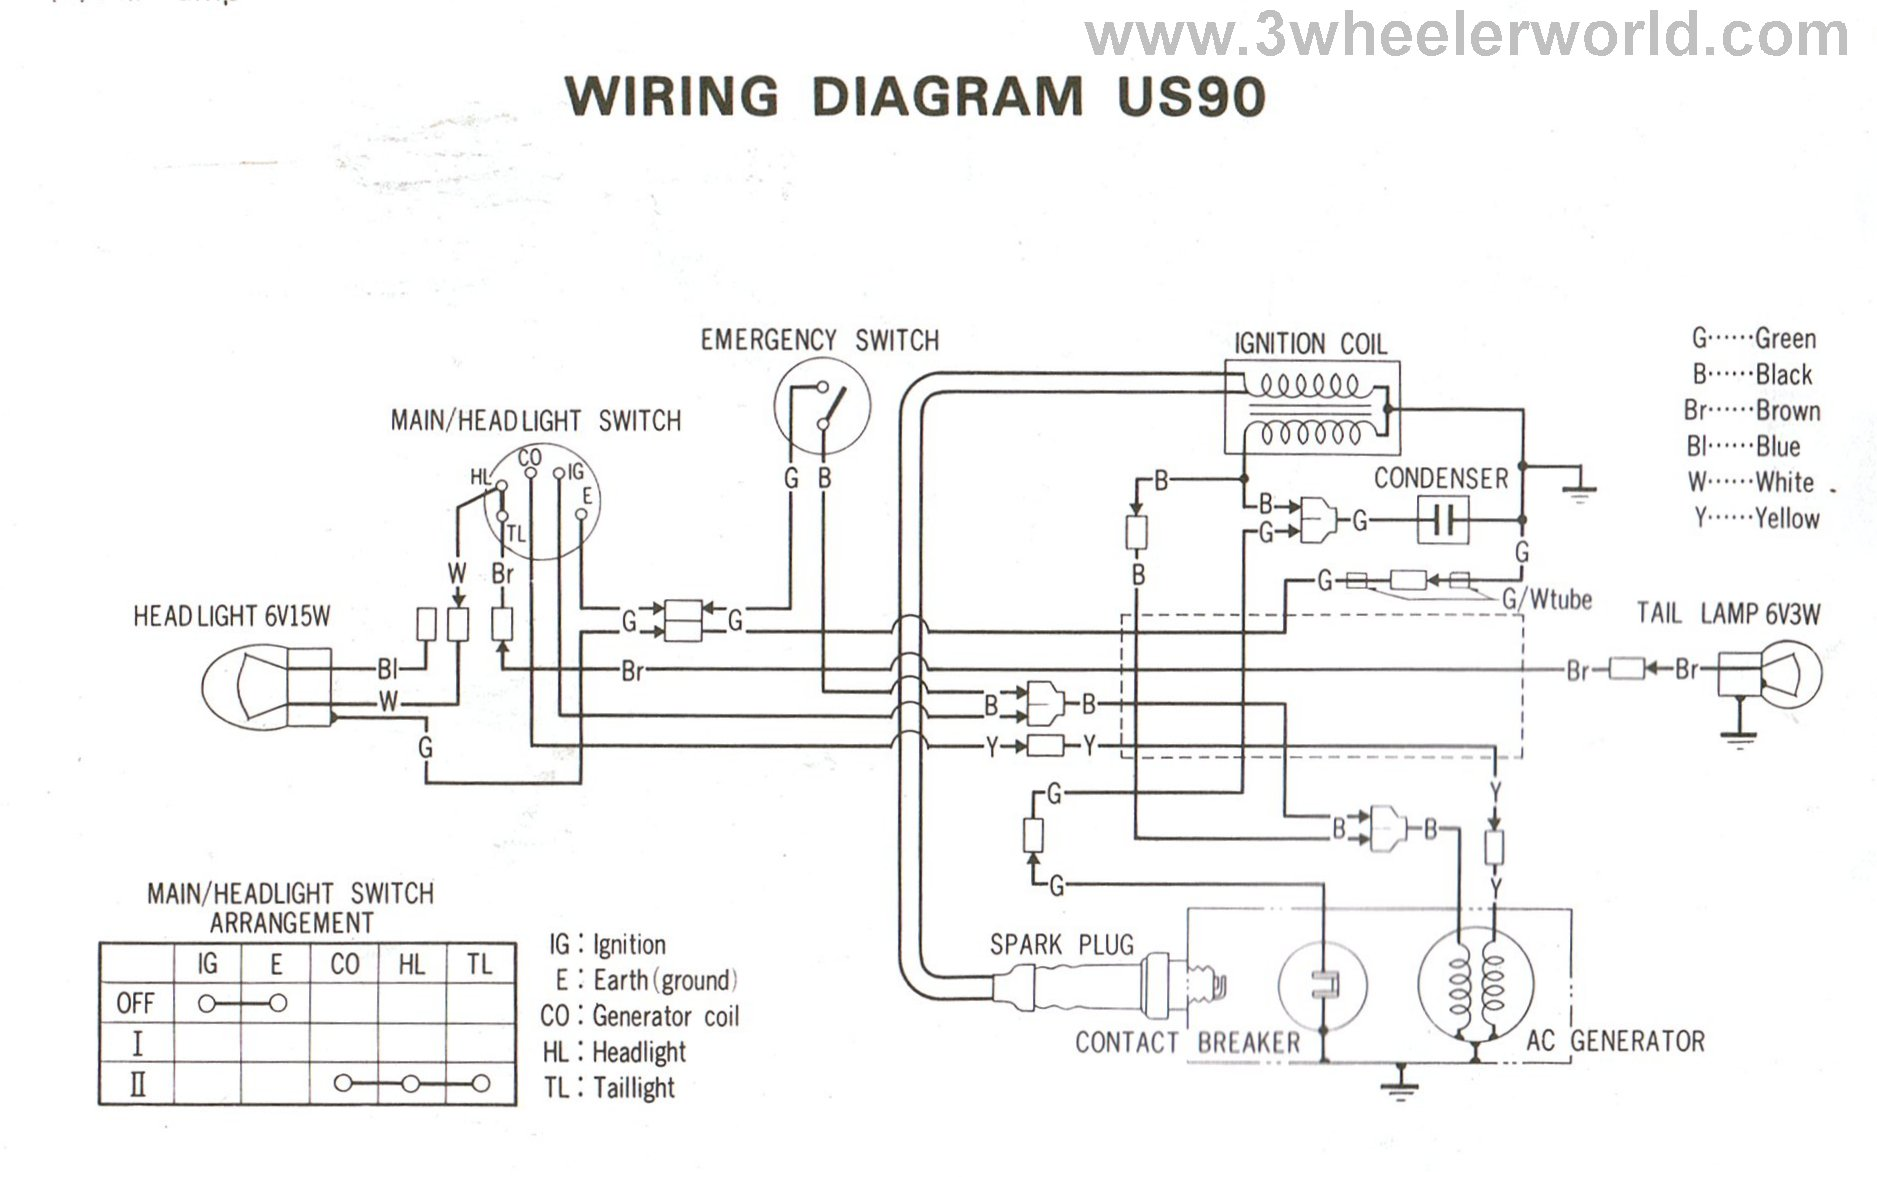 yamaha trx 850 wiring diagram wd 2576  polaris 90 wiring diagram free diagram  wd 2576  polaris 90 wiring diagram free